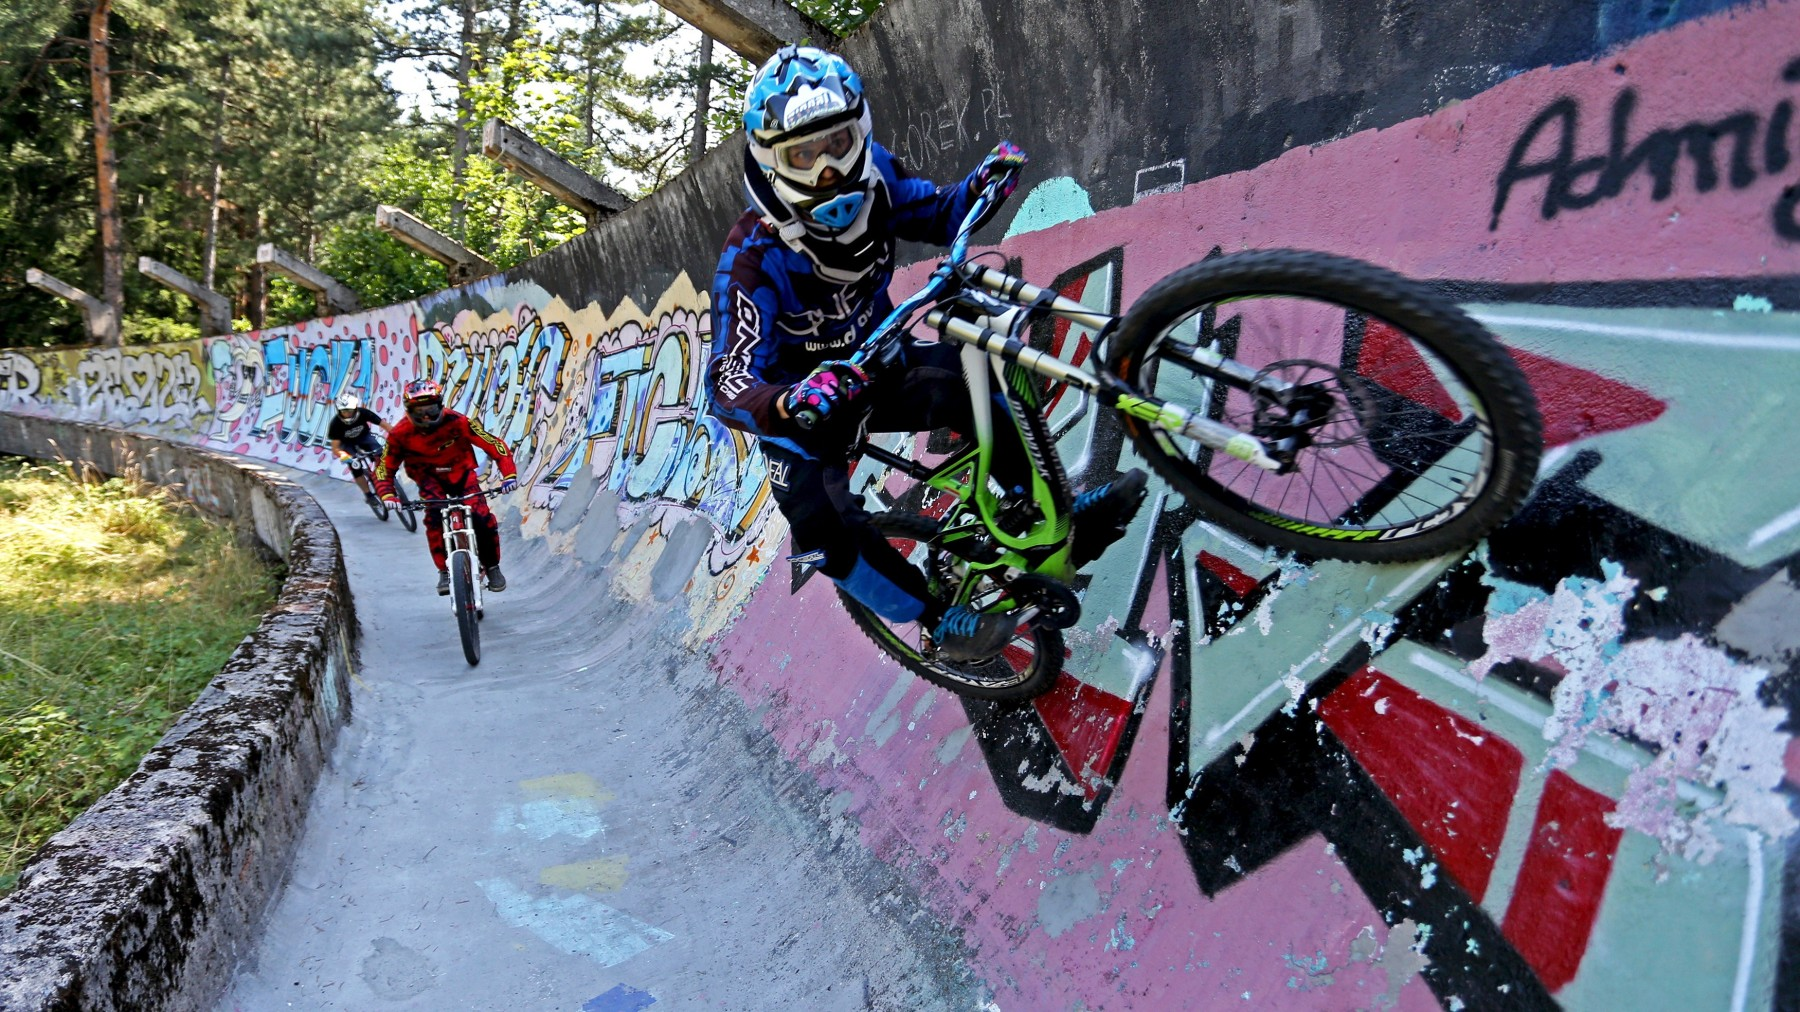 Downhill bikers Kemal Mulic (C), Tarik Hadzic (L) and Kamer Kolar train on the disused bobsled track from the 1984 Sarajevo Winter Olympics on Trebevic mountain near Sarajevo, Bosnia and Herzegovina, August 8, 2015. Abandoned and left to crumble into oblivion, most of the 1984 Winter Olympic venues in Bosnia's capital Sarajevo have been reduced to rubble by neglect as much as the 1990s conflict that tore apart the former Yugoslavia. The bobsled and luge track at Mount Trebevic, the Mount Igman ski jumping course and accompanying infrastructure are now decomposing into obscurity. The bobsled and luge track, which was also used for World Cup competitions after the Olympics, became a Bosnian-Serb artillery stronghold during the war and is nowadays a target of frequent vandalism. Picture taken August 8. REUTERS/Dado Ruvic      TPX IMAGES OF THE DAY      - RTX1NQ1L